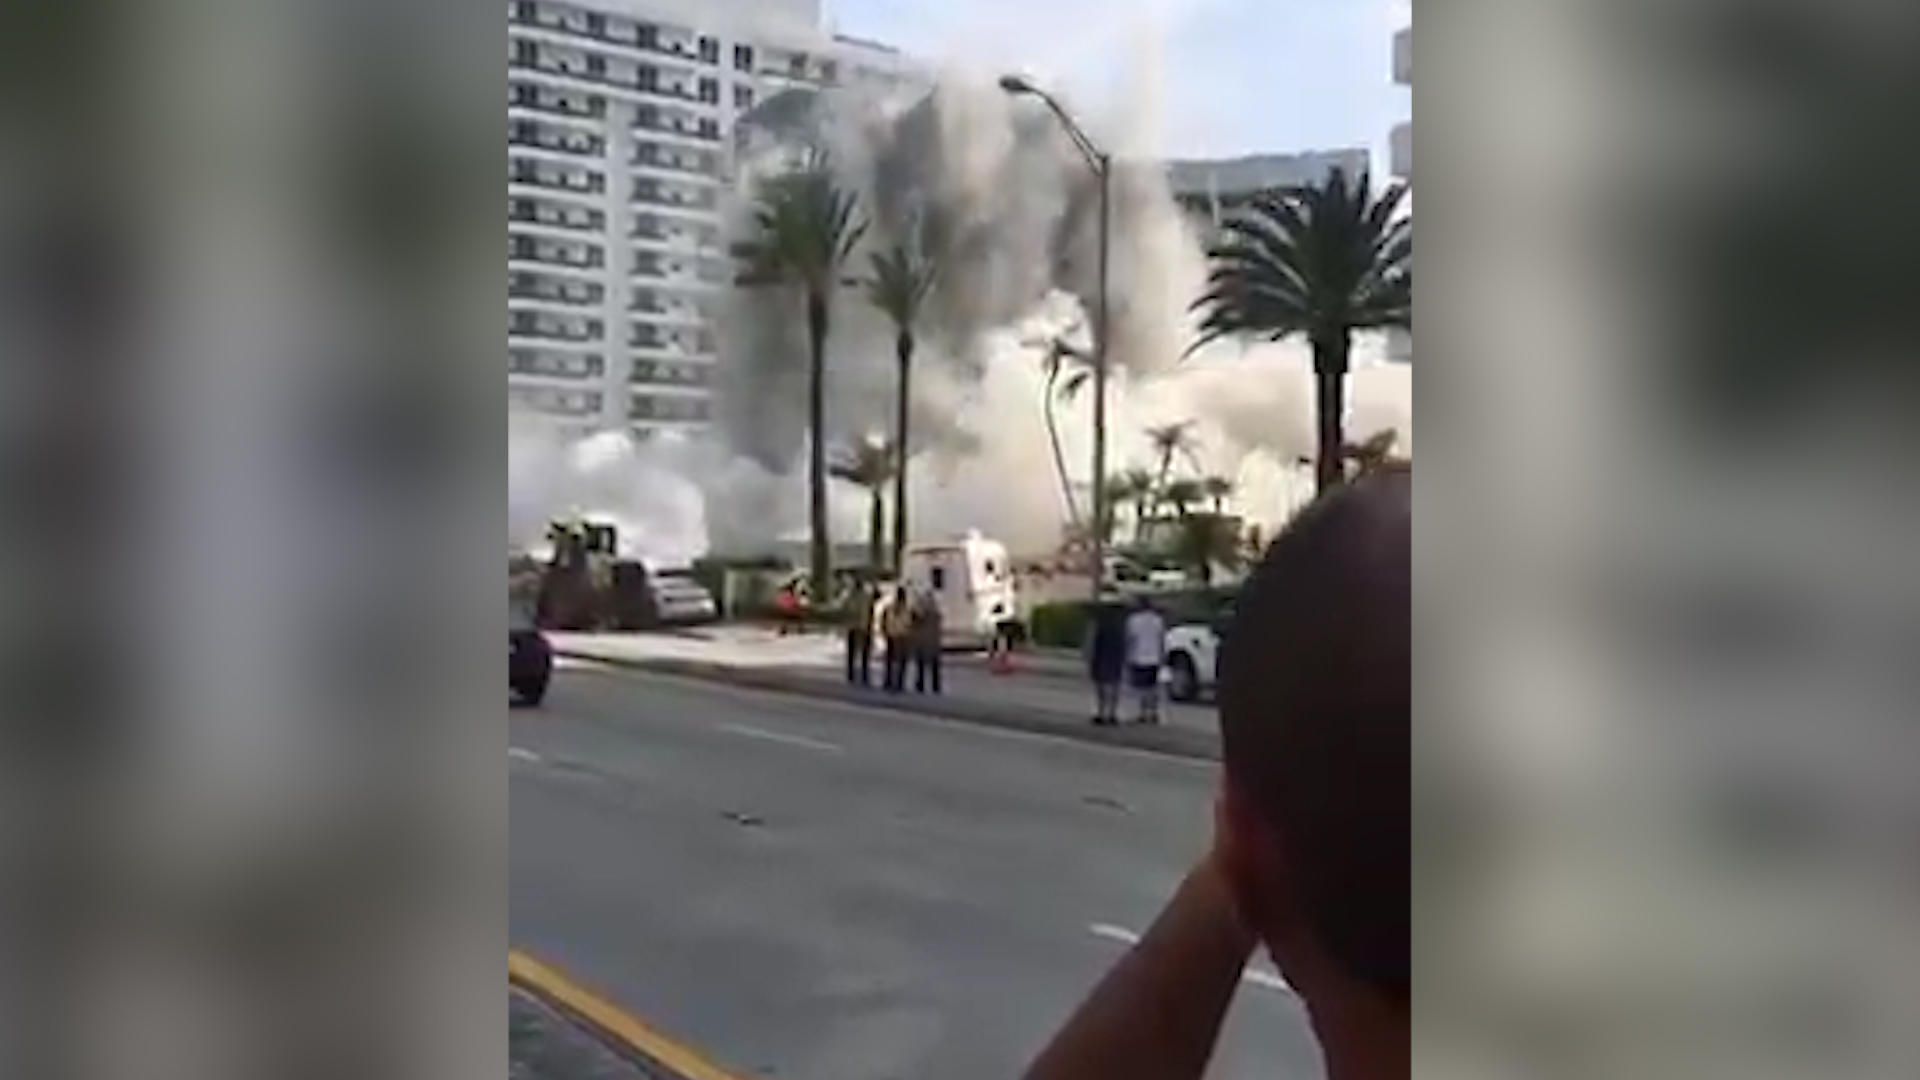 At least 1 injured in Miami Beach building collapse